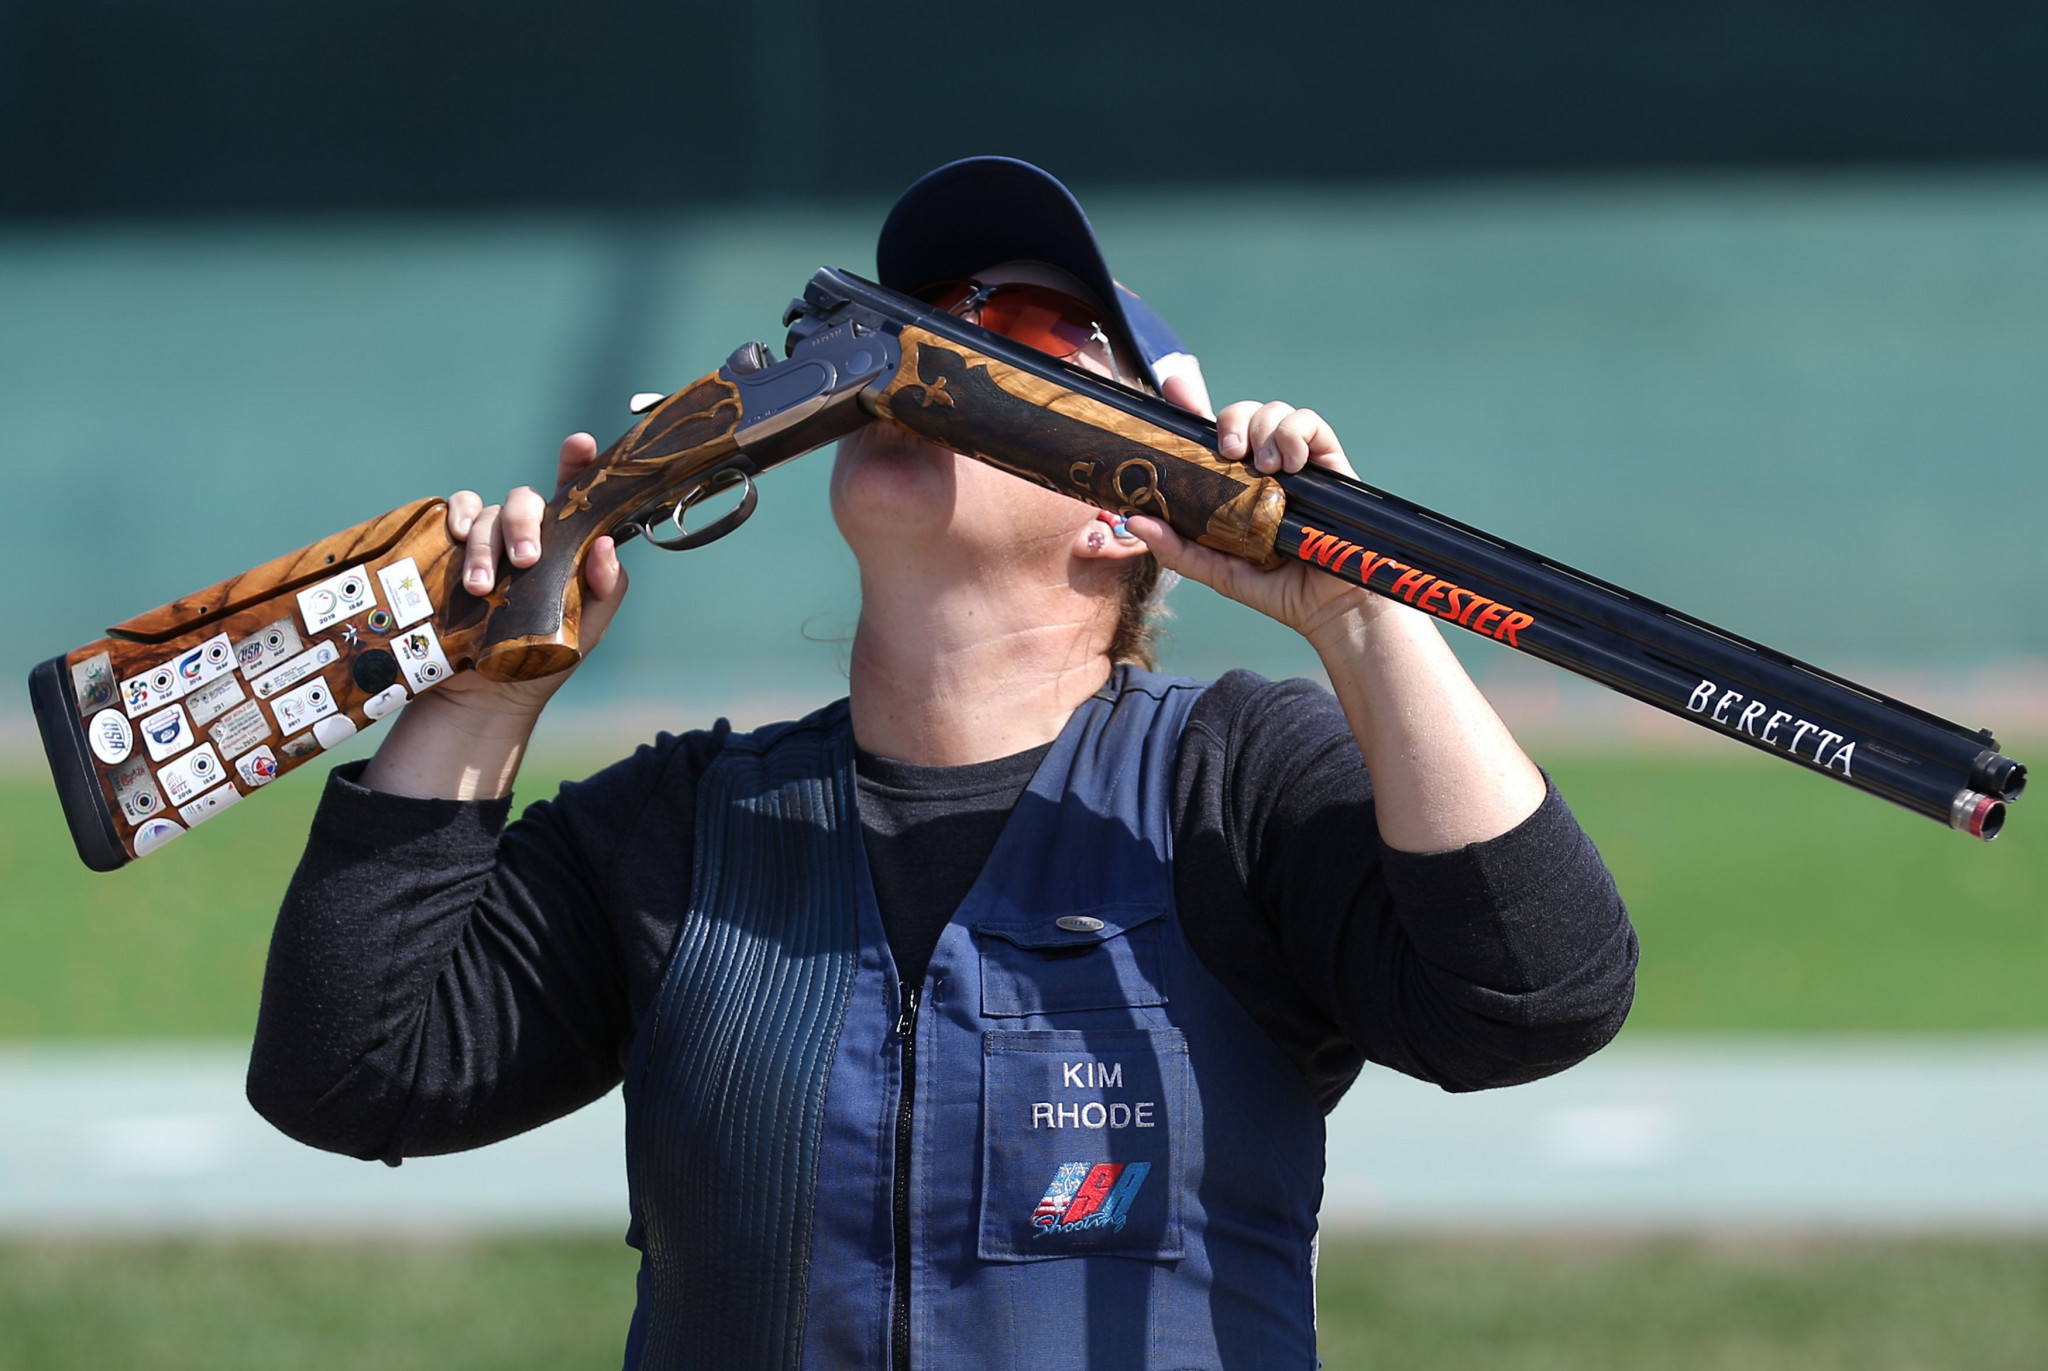 America's Kim Rhode won her third consecutive Pan American Games women's skeet title ©Getty Images